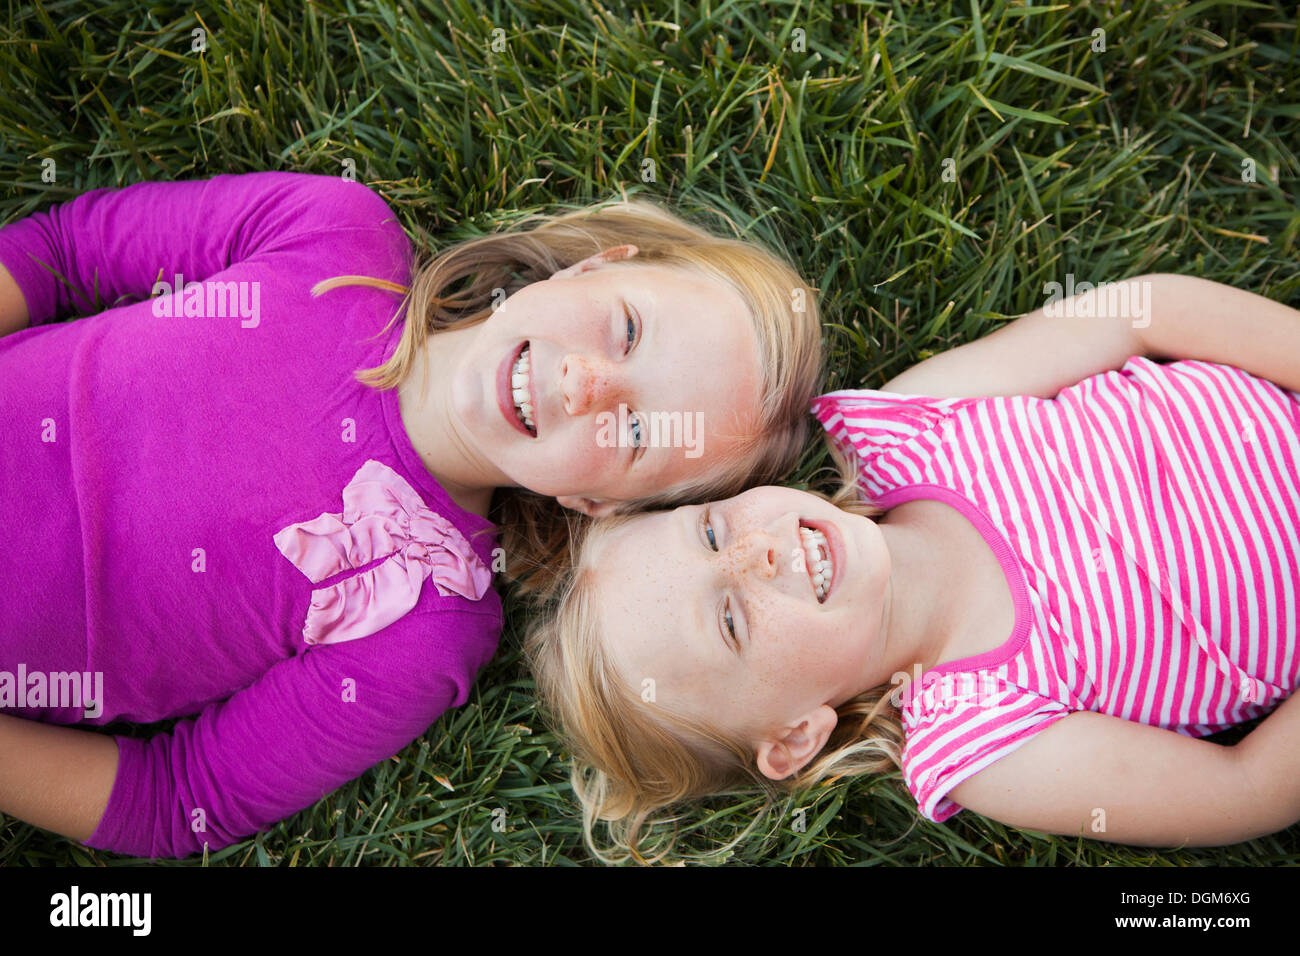 A portrait of two sisters smiling. View from above, of two girls lying on their backs on the grass, heads together. - Stock Image